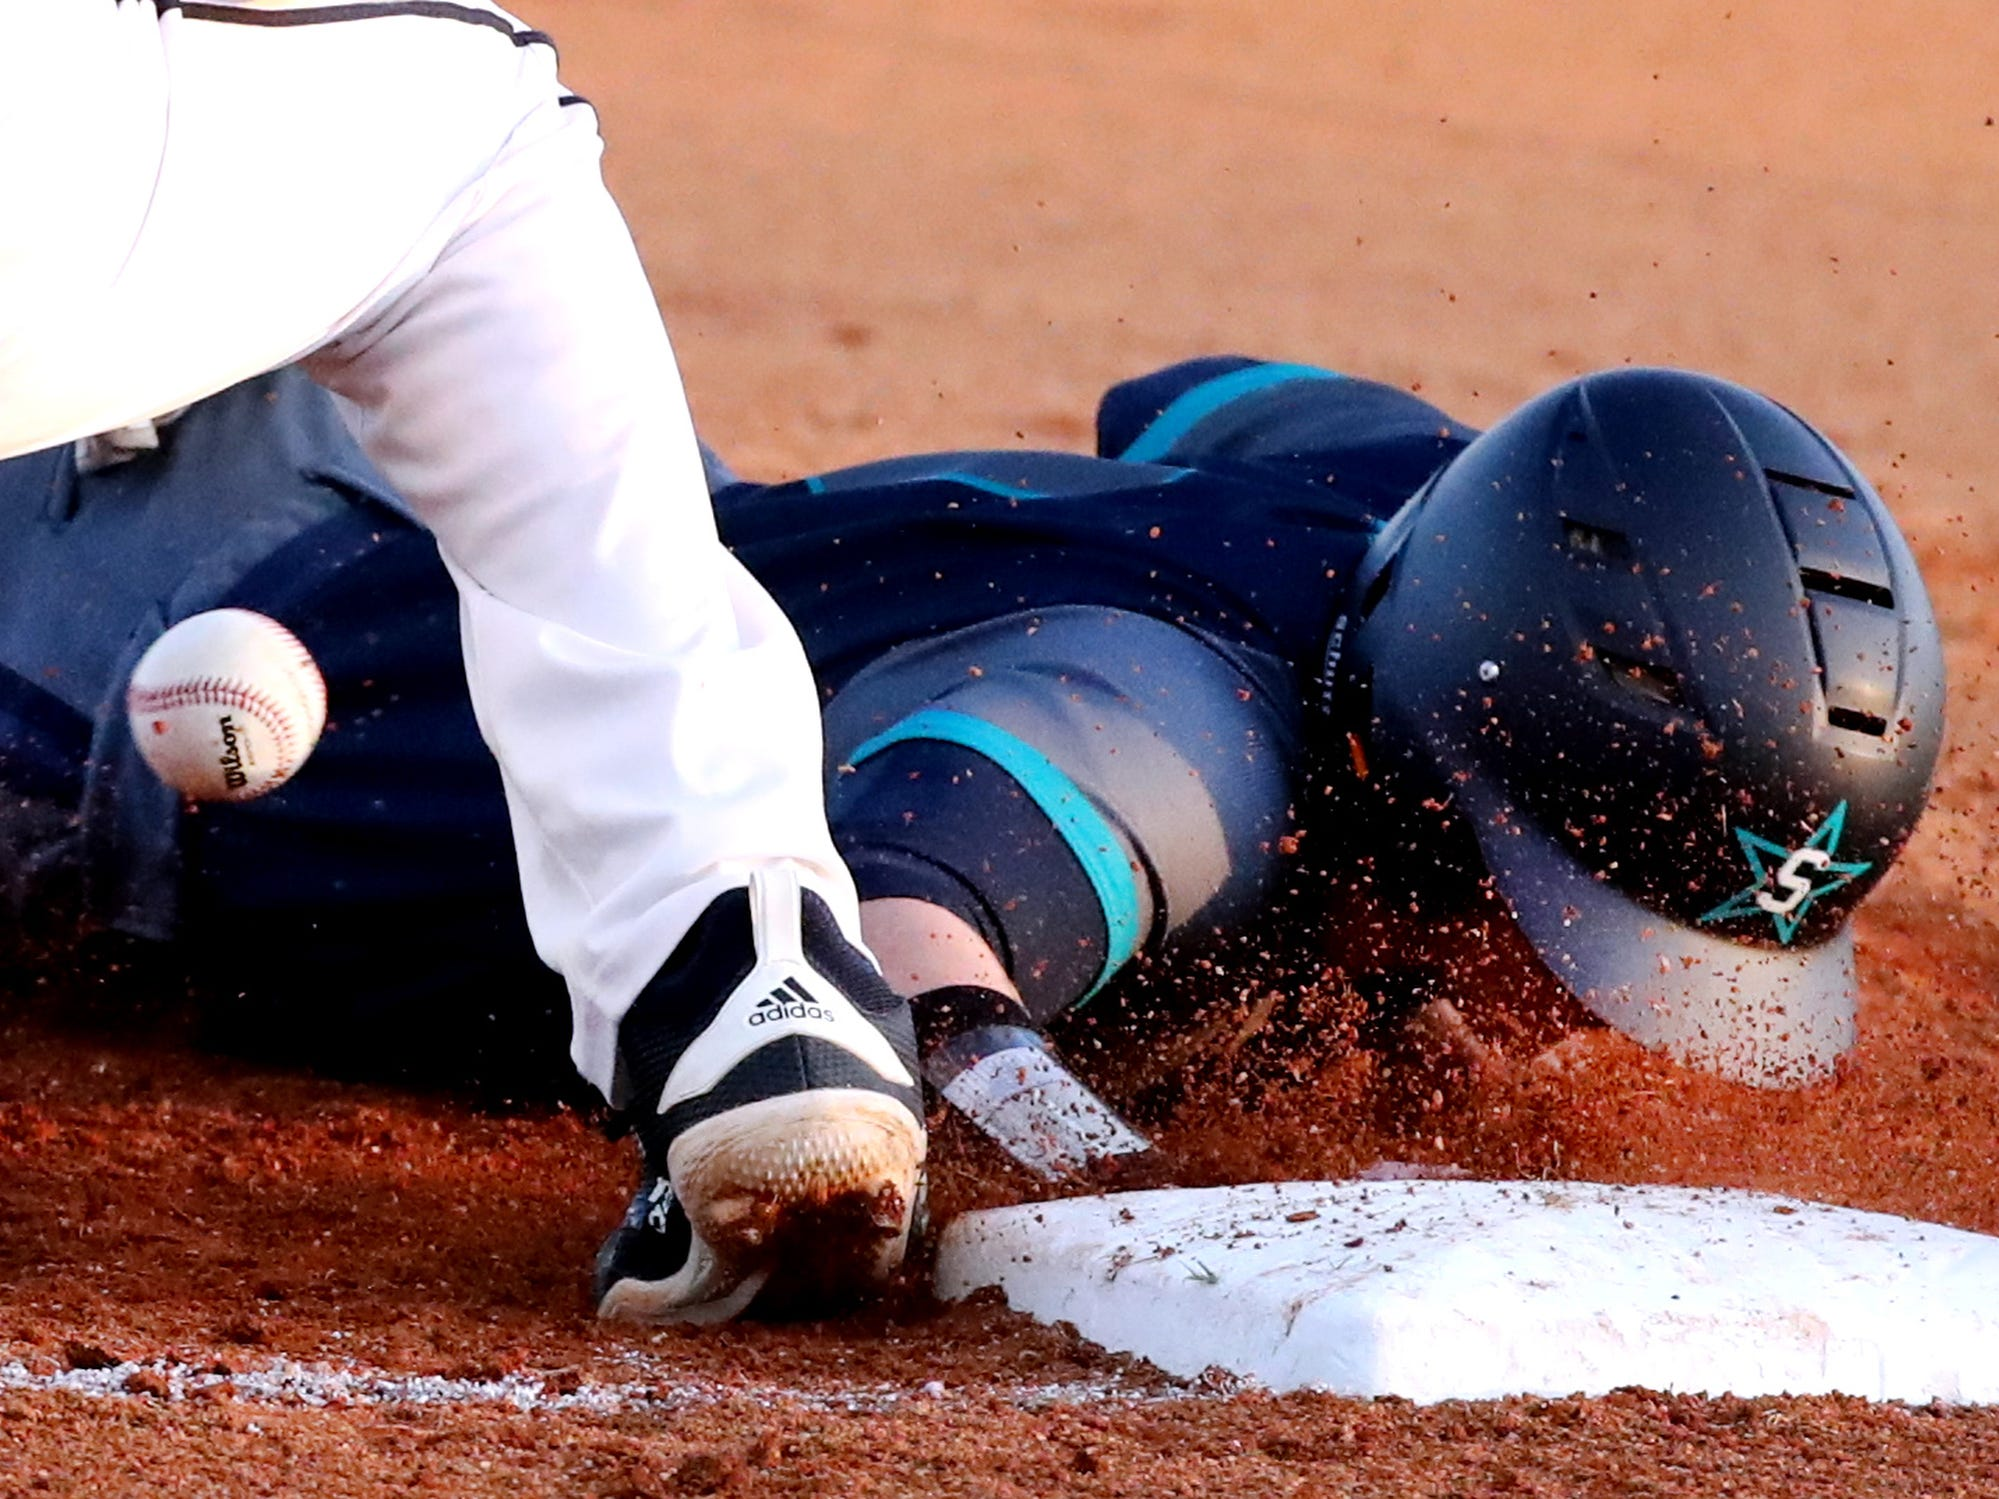 Siegel's Evan Milligan (9) dives back to first base as Blackman's Jon Blalock (18) misses the catch as he tries to tag out Milligan on Monday, March 11, 2019.